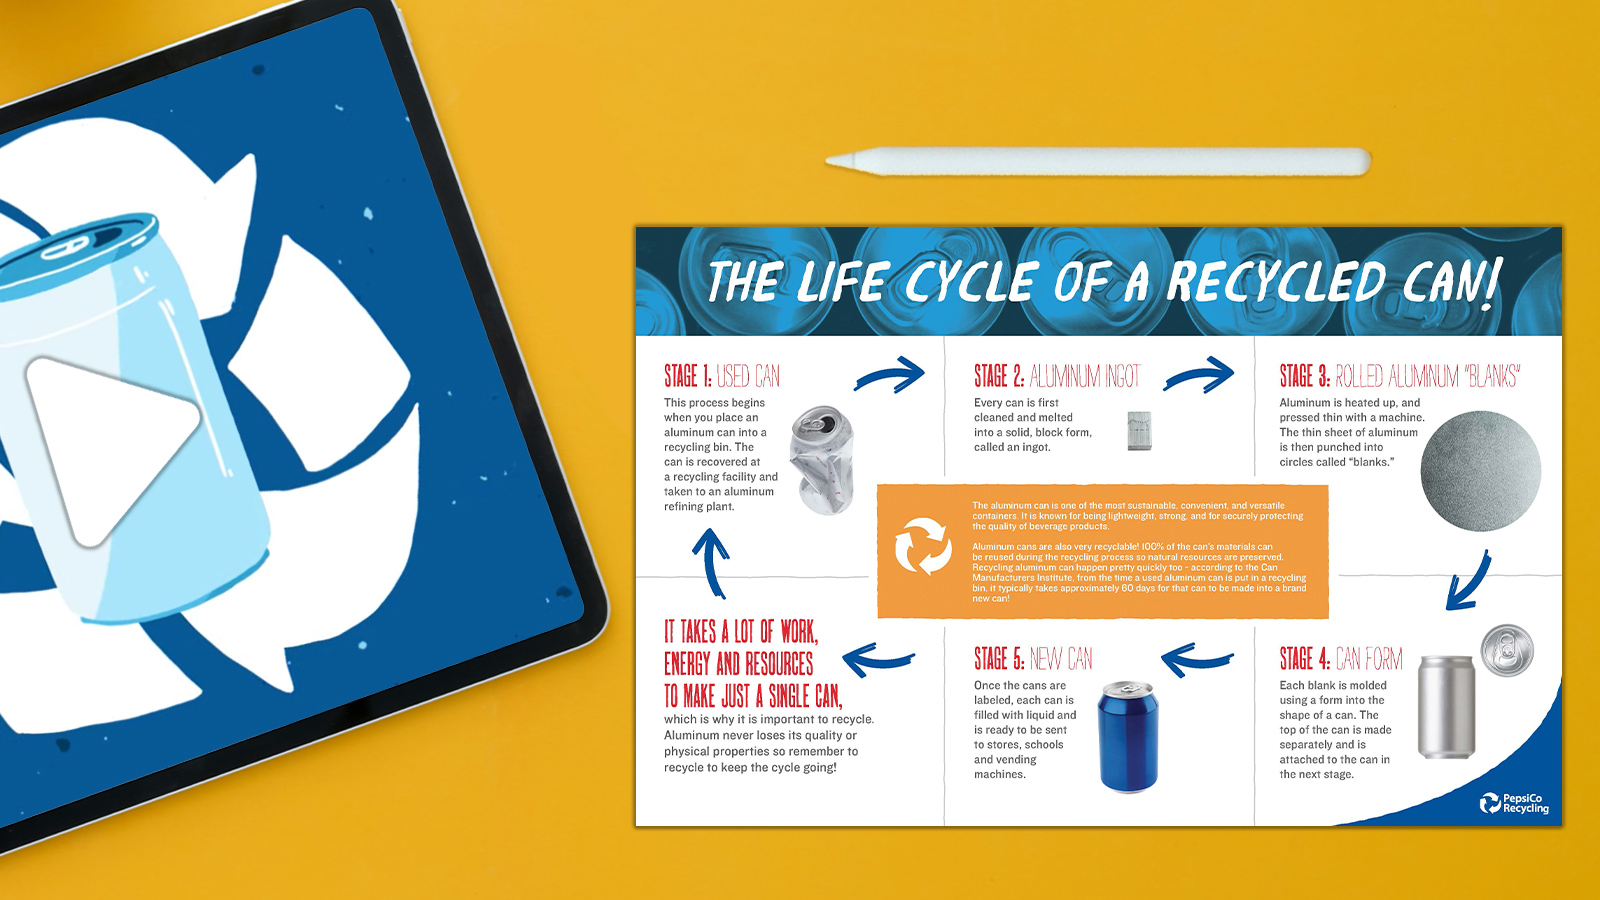 What Is the Life Cycle of a Recycled Aluminum Can?